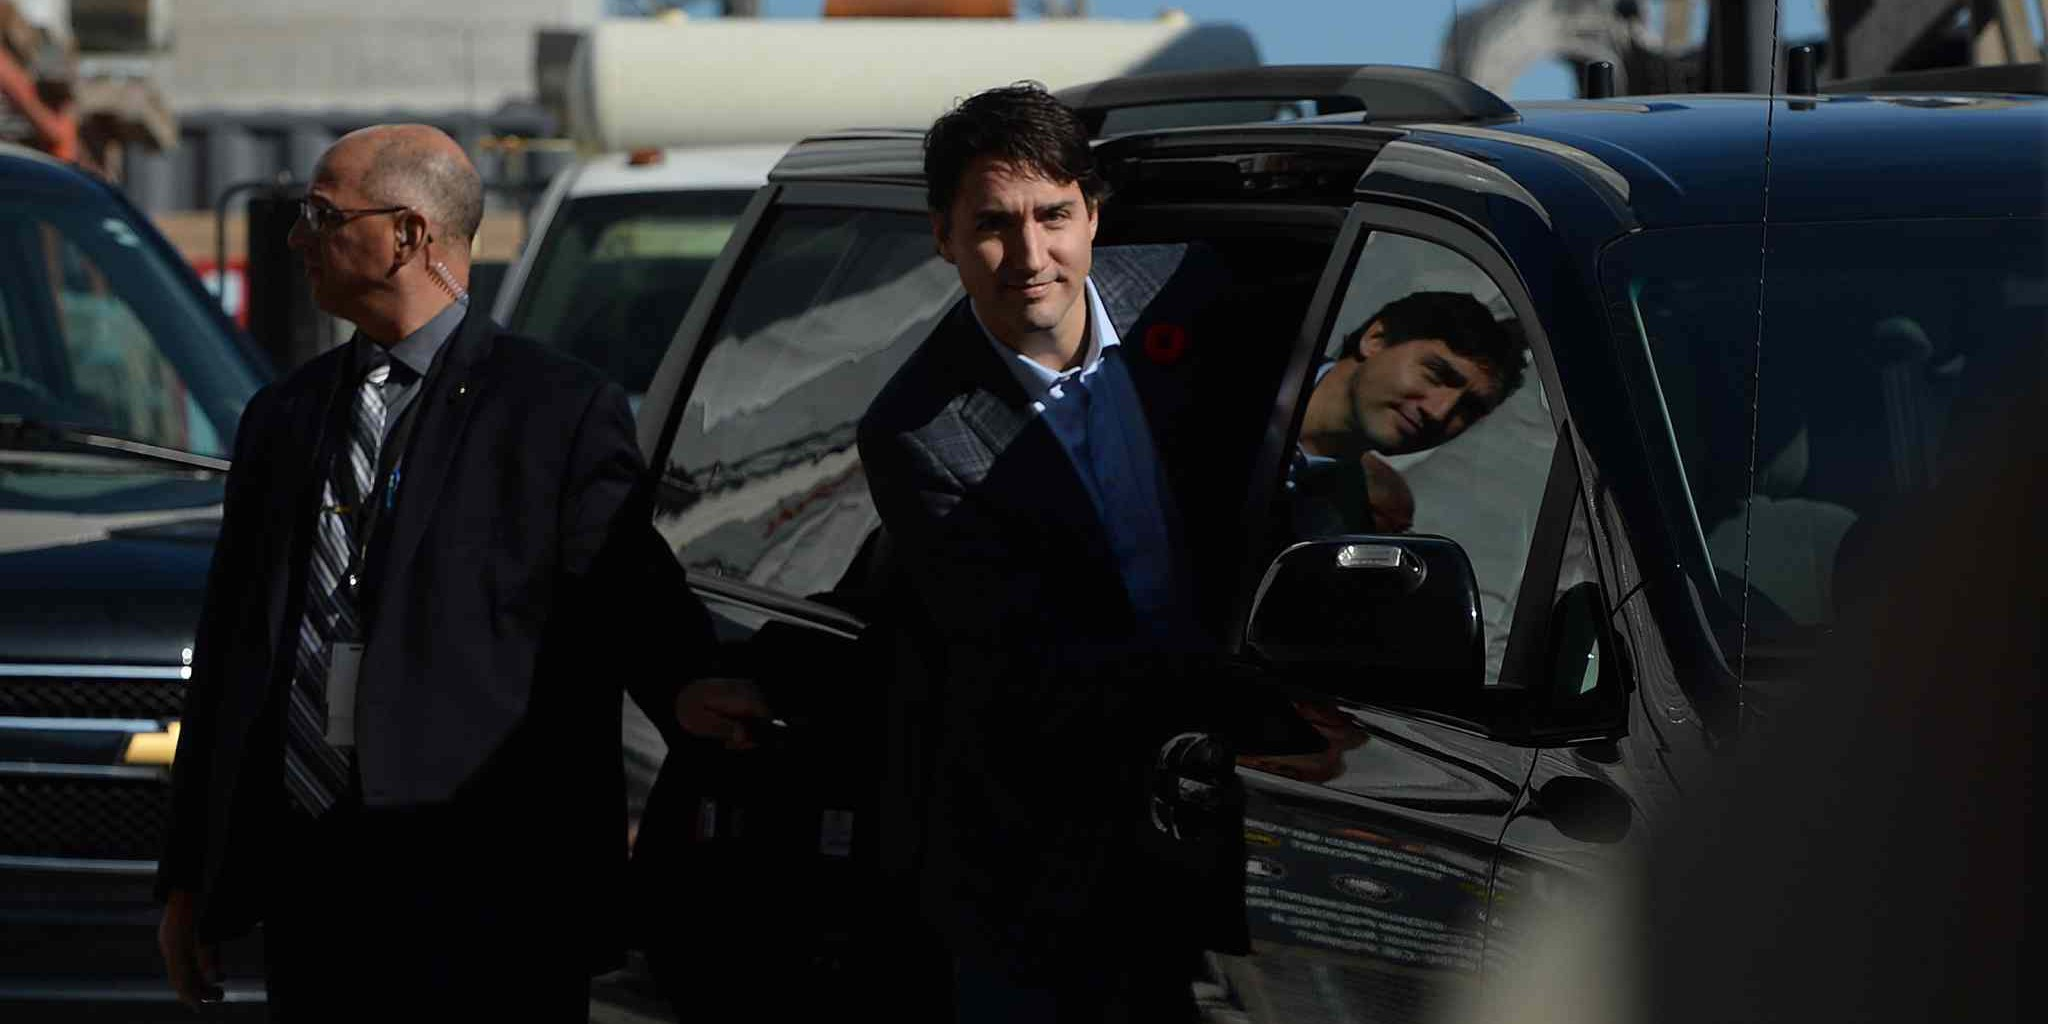 Prime minister-designate Justin Trudeau enters his car after taking a tour of the West Block construction site on Parliament Hill in Ottawa on Tuesday, November 3, 2015. THE CANADIAN PRESS/Sean Kilpatrick